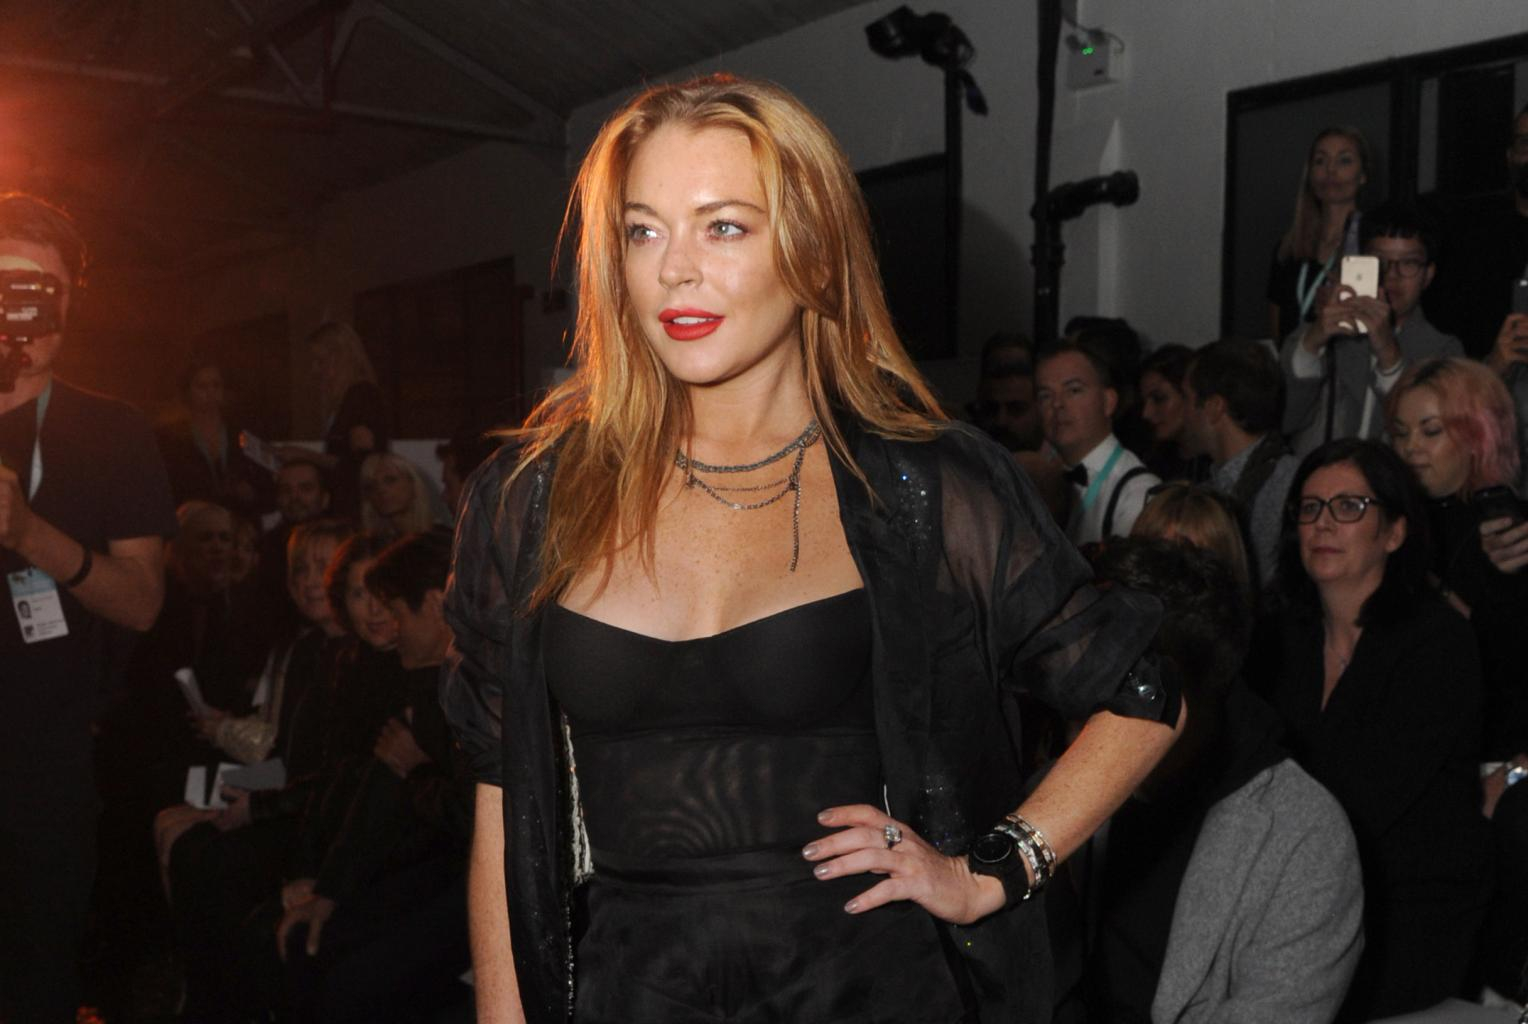 Report: Lindsay Lohan Demands Big Bucks, Meeting With Putin For Russian TV Appearance